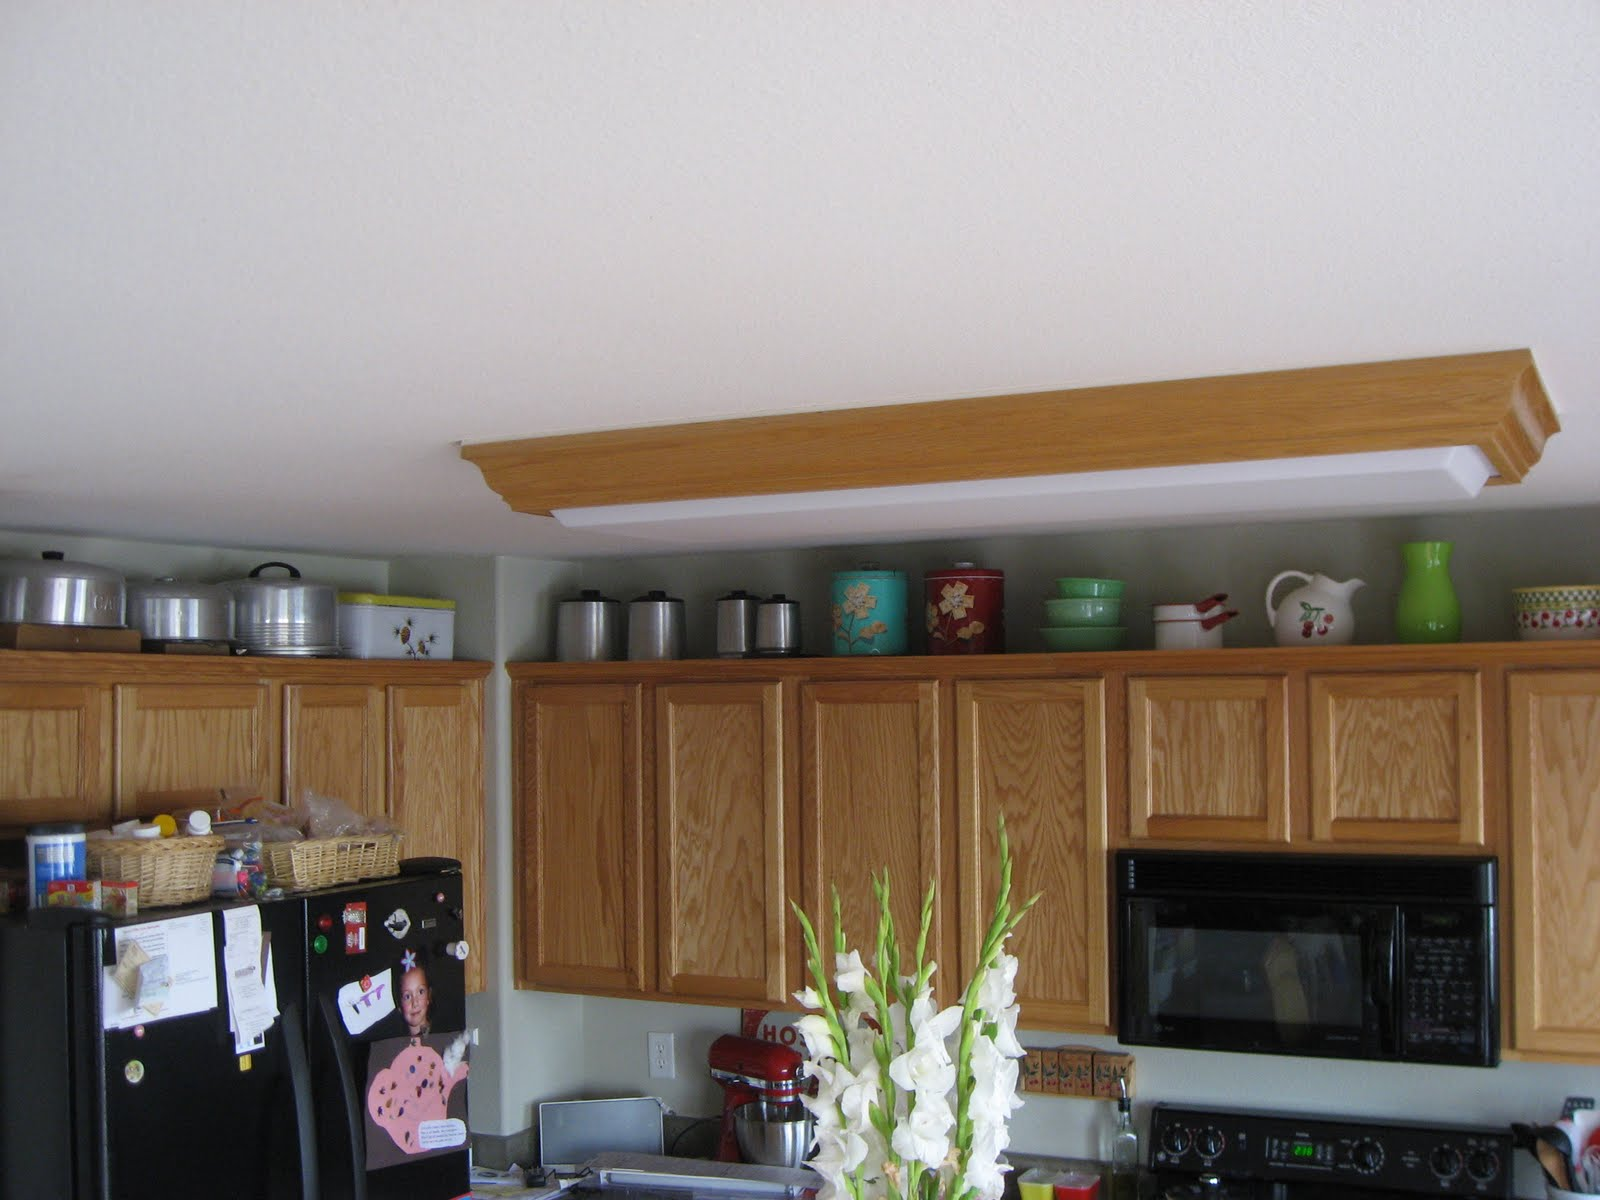 Decorating kitchen cabinets afreakatheart Above kitchen cabinet decorating idea pictures